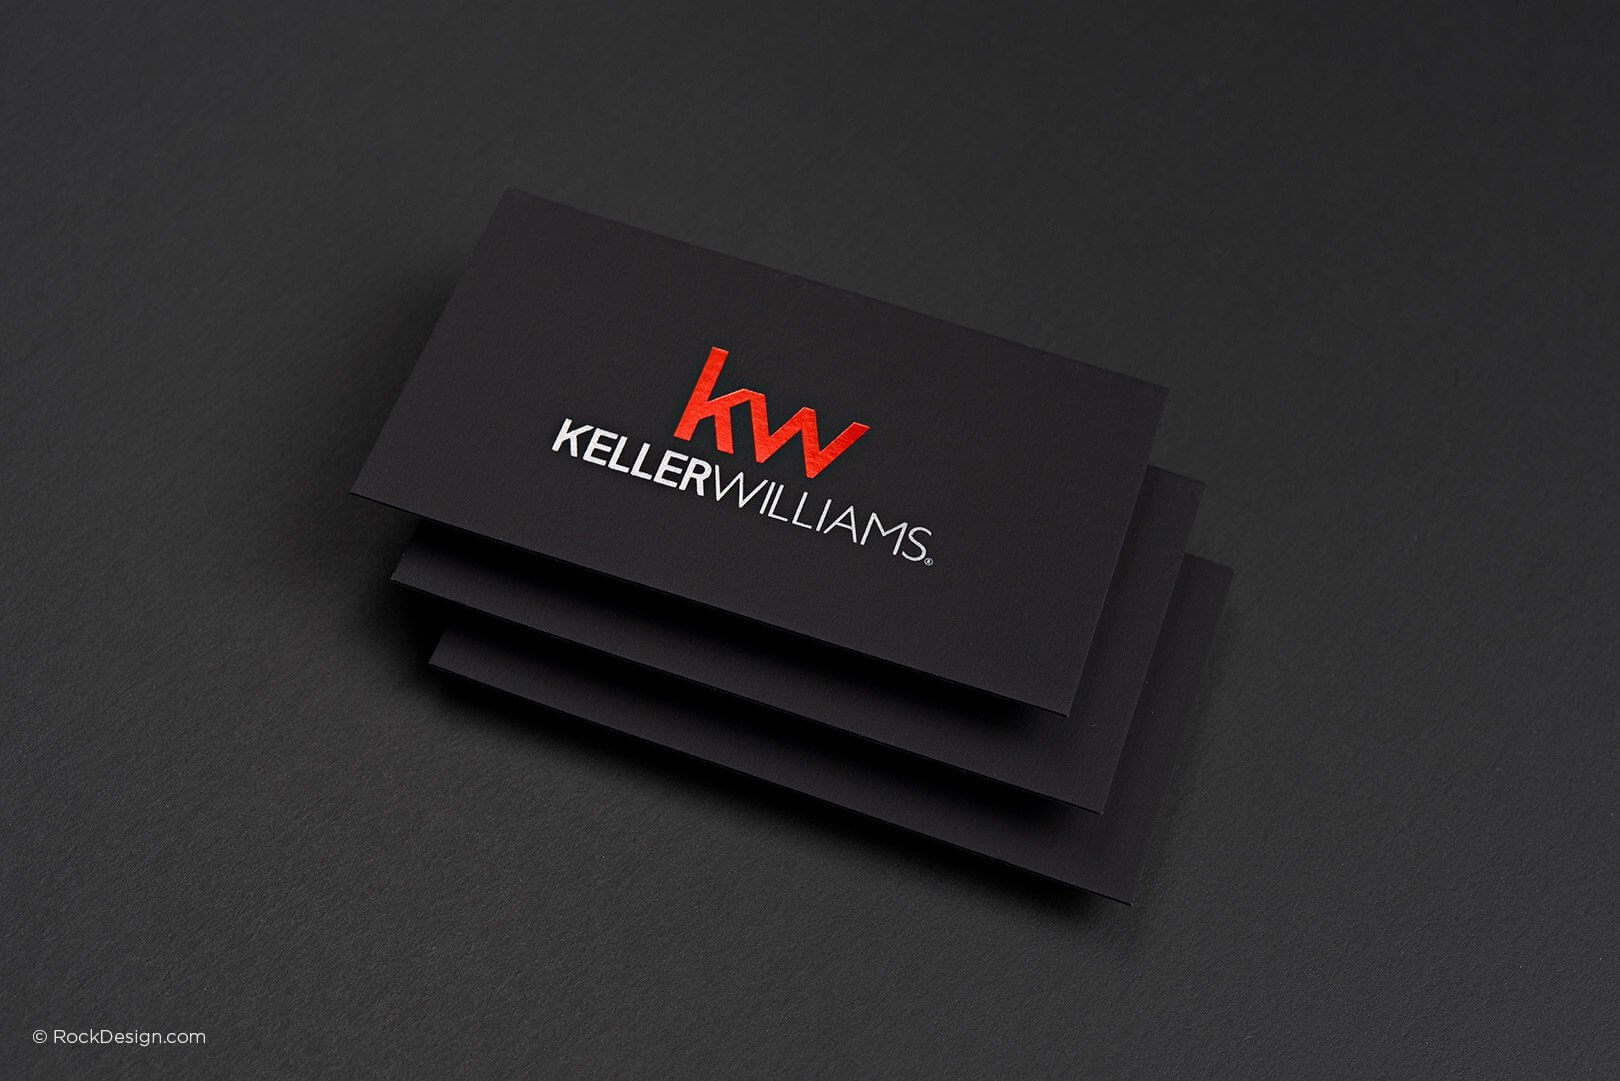 Free Keller Williams Business Card Template With Print Regarding Keller Williams Business Card Templates